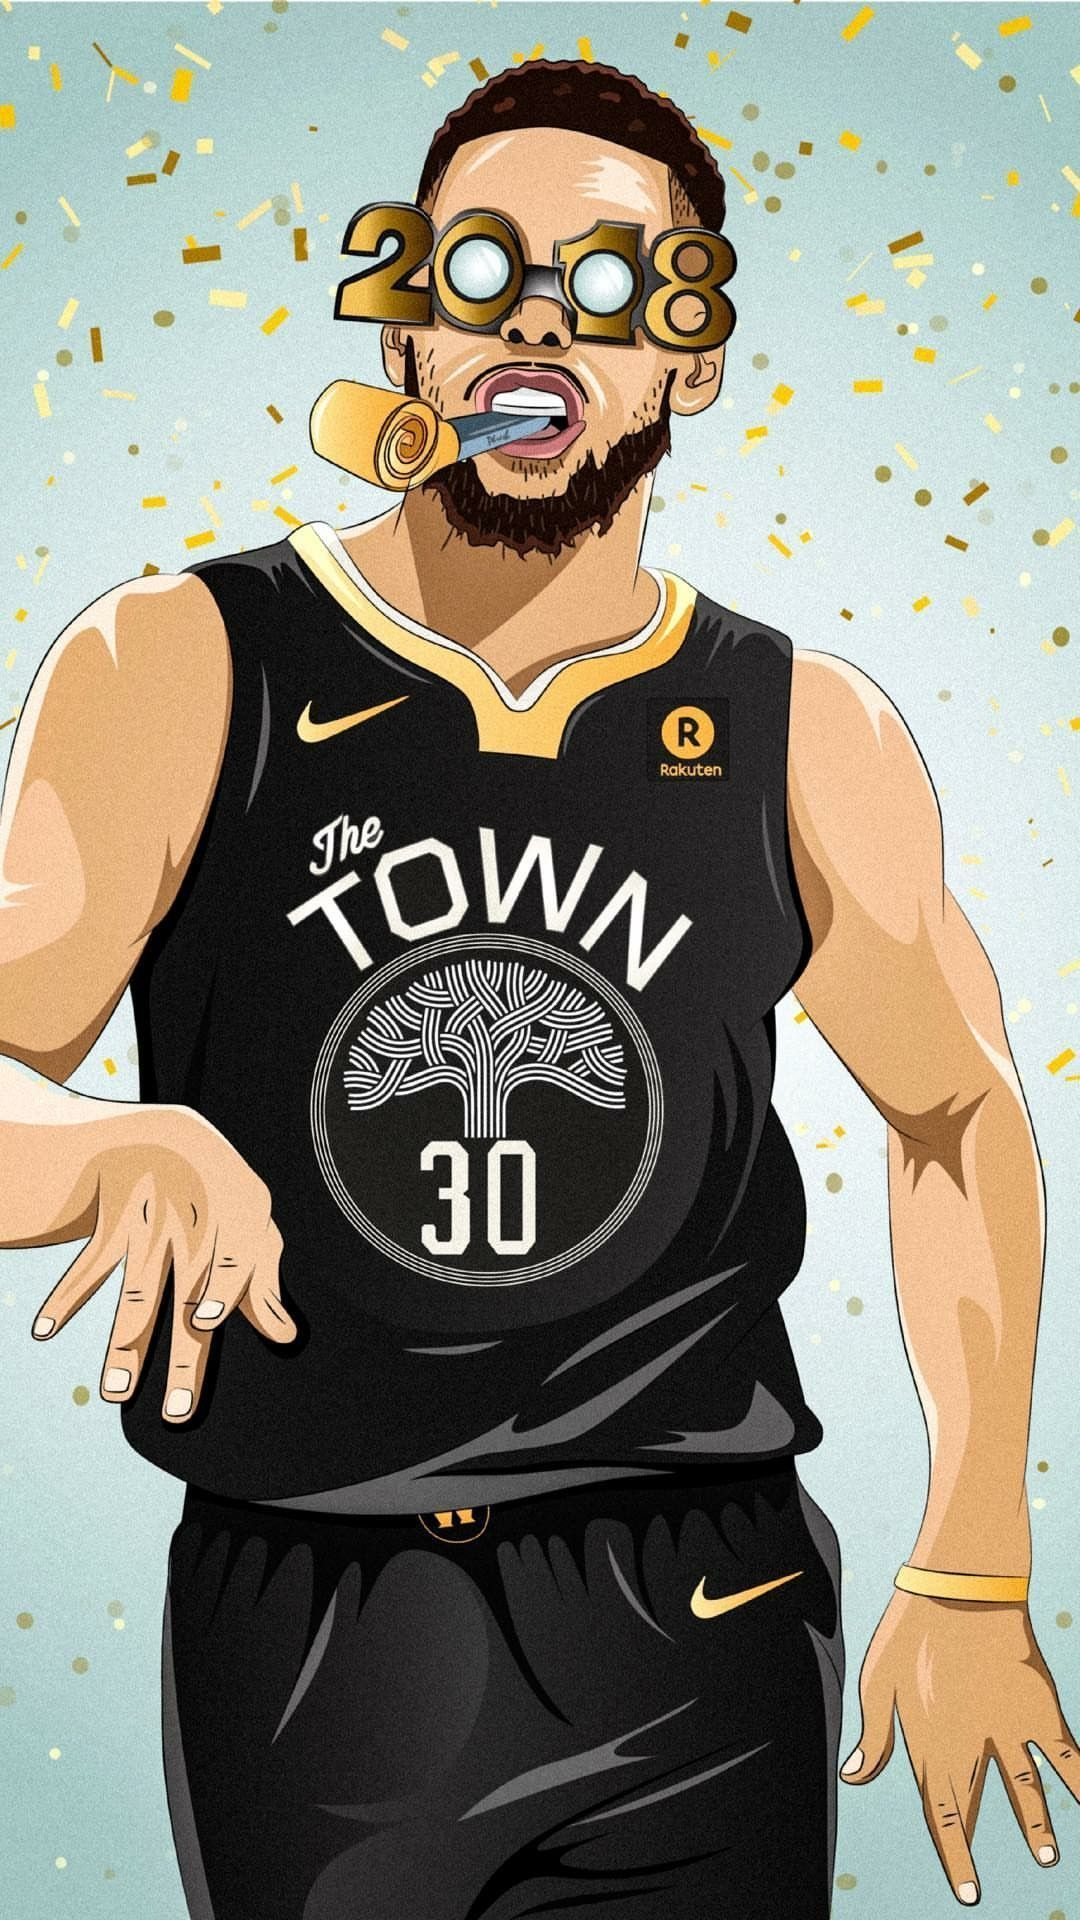 1080x1920 Stephen Curry 2018 New Year Wallpaper Basketball Pinterest Stephen Curry Wallpaper Nba Stephen Curry Stephen Curry Basketball